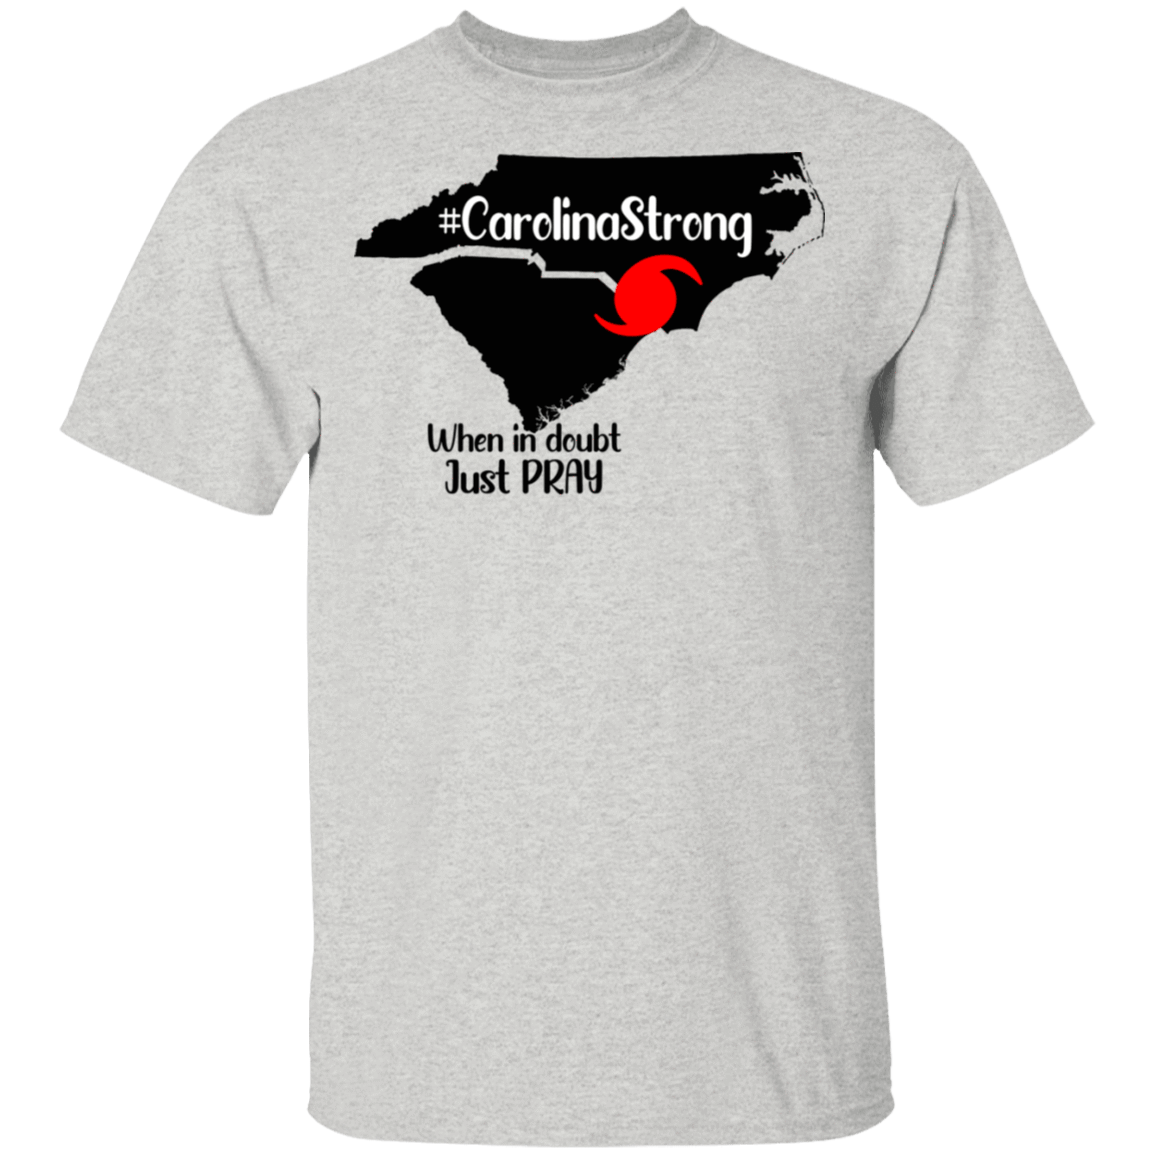 Carolina Strong When In Doubt Just Pray T-Shirts, Hoodies, Tank 22-2475-79579570-12568 - Tee Ript